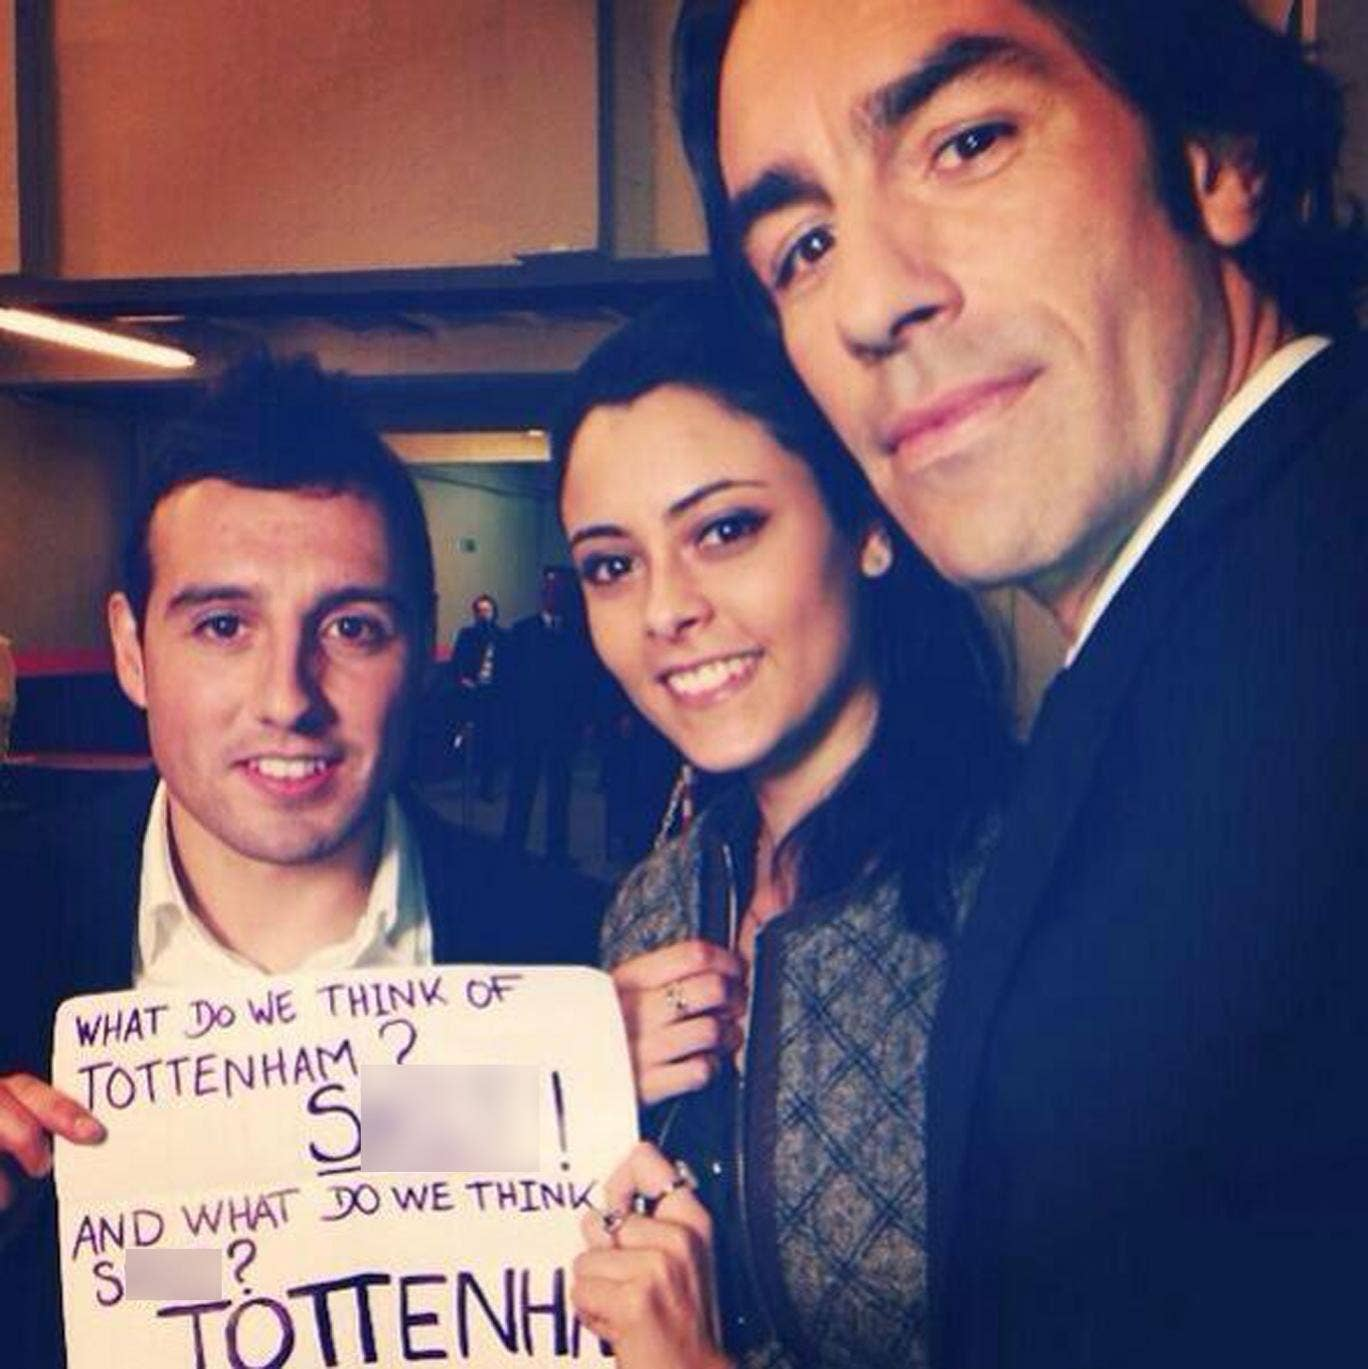 Current Arsenal midfielder Santi Cazorla and former player Robert Pires pose with a female fan holding an expletive-ridden chant aimed towards Tottenham supporters